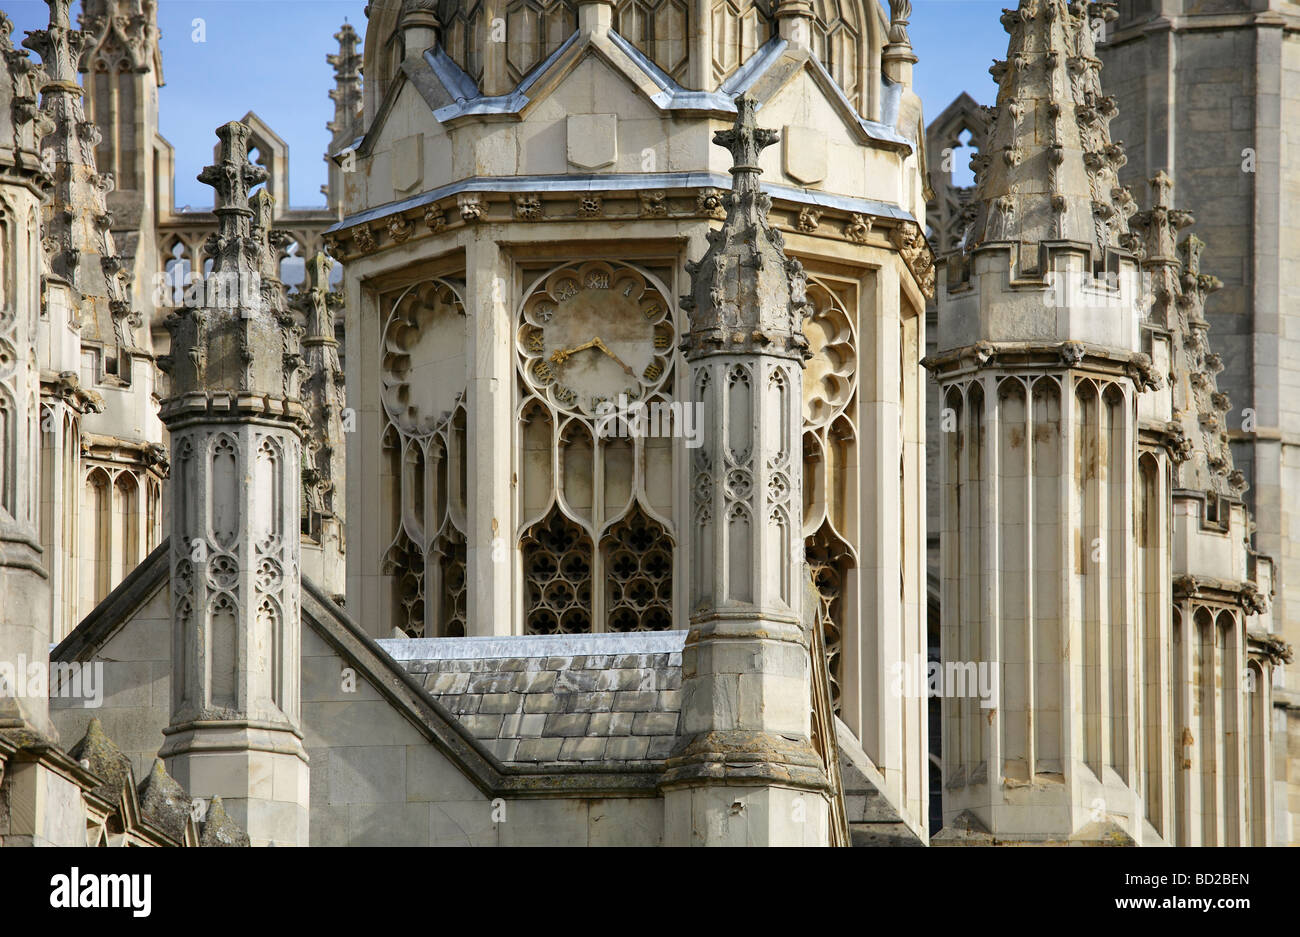 Dreaming Gothic spires- entrance to King's College Cambridge 2 - Stock Image